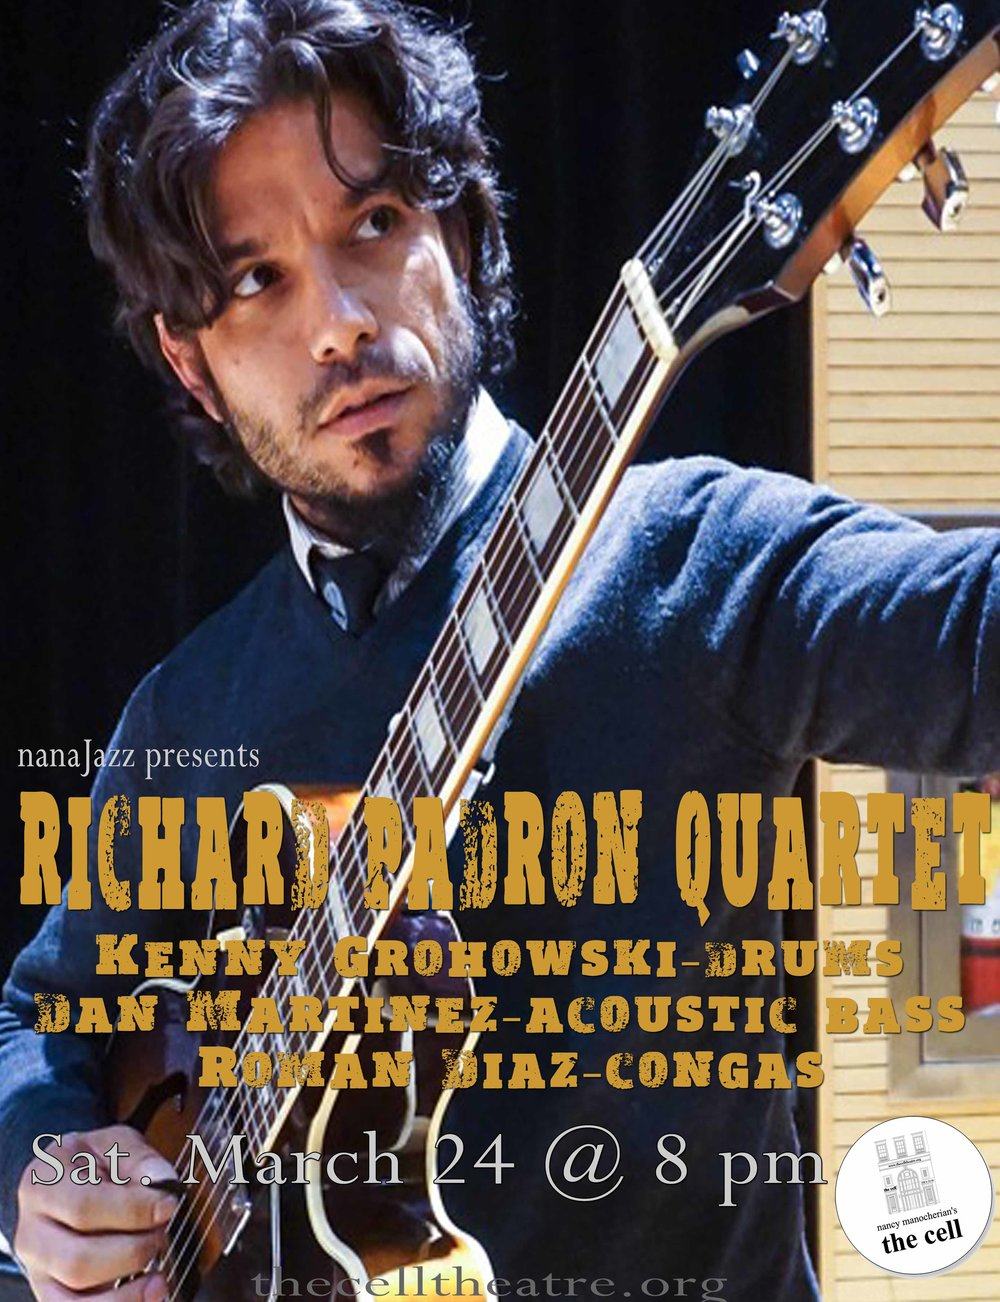 Richard Padron Quartet web.jpg